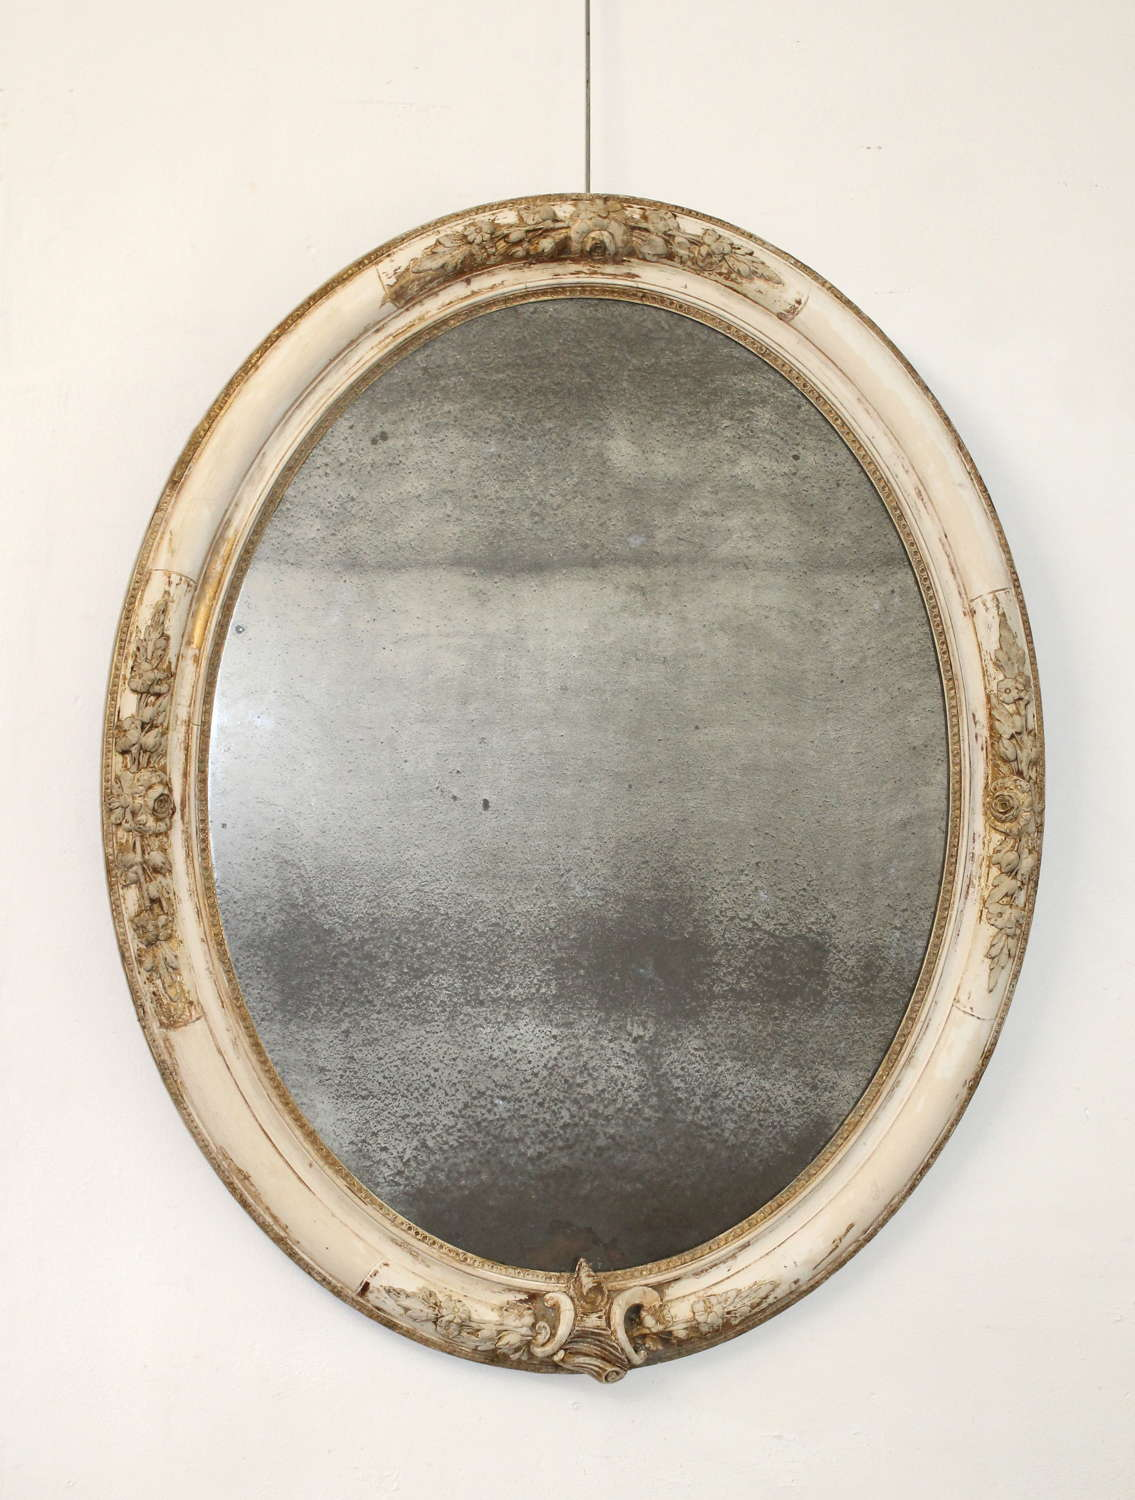 Large antique oval mirror with foxed mercury glass